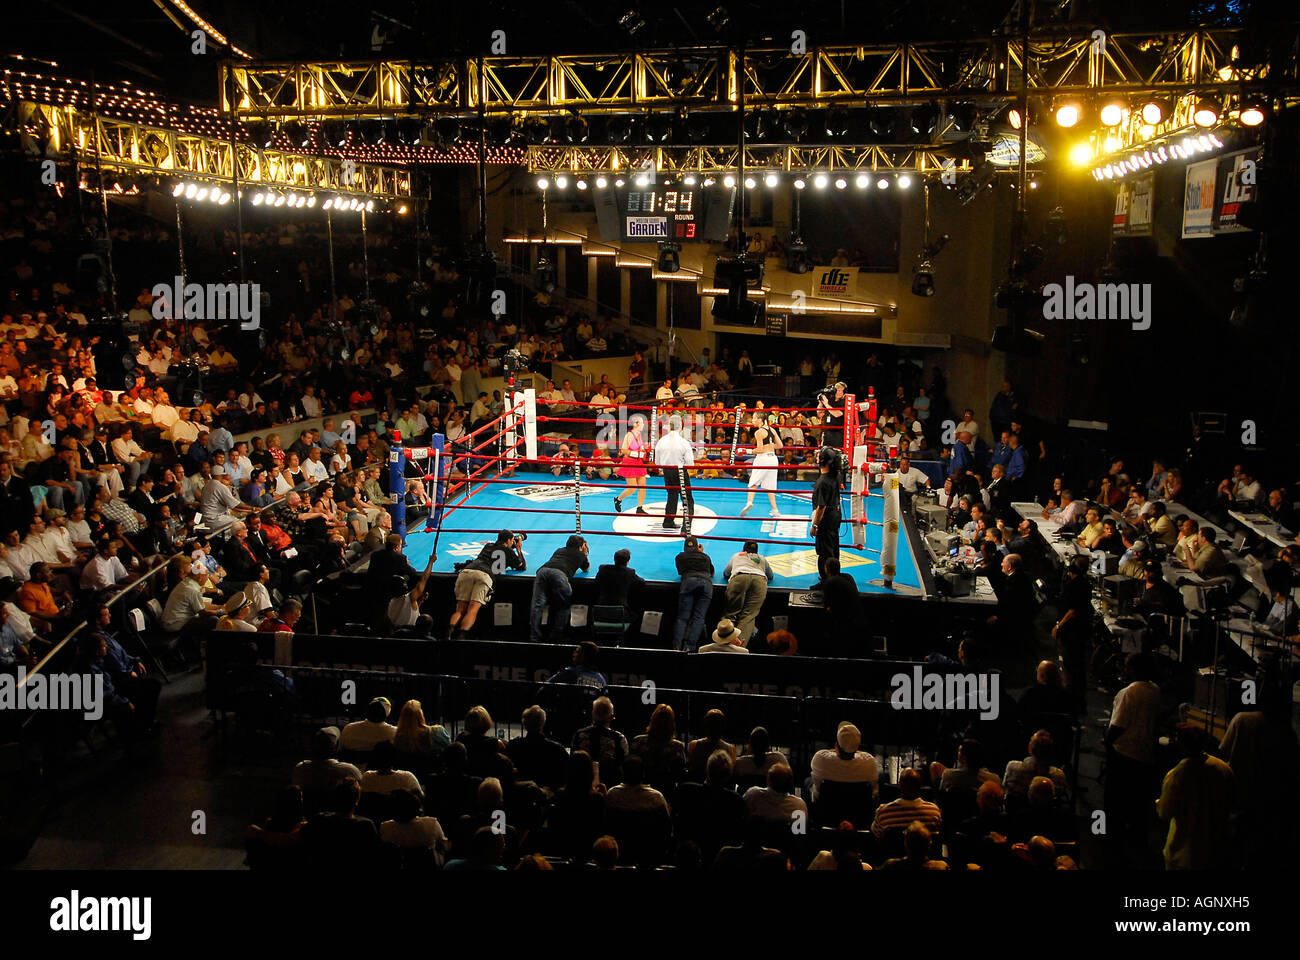 Madison square garden boxing calendar garden ftempo - Madison square garden event schedule ...